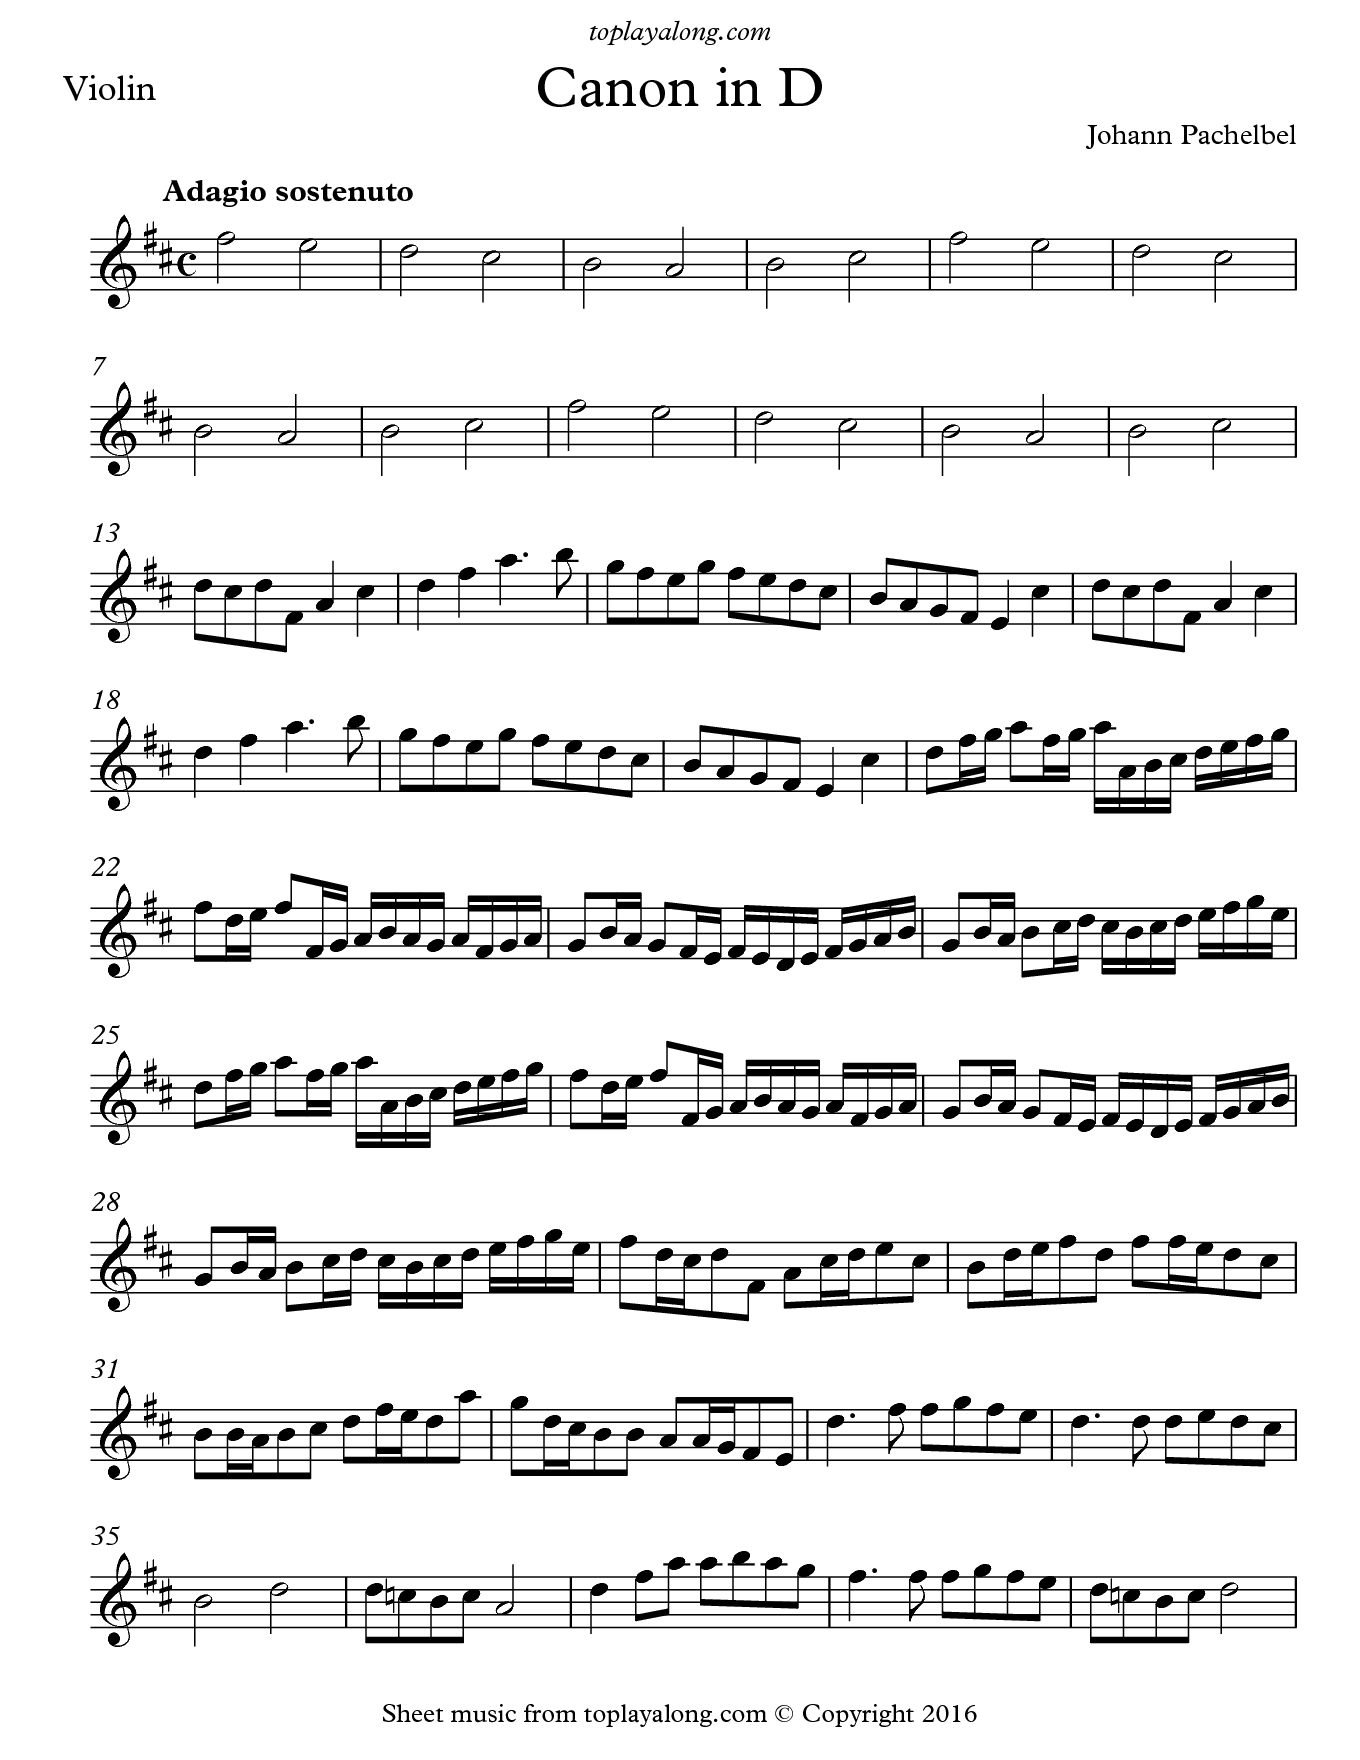 Canon in d by pachelbel free sheet music for violin visit canon in d by pachelbel free sheet music for violin visit toplayalong hexwebz Gallery